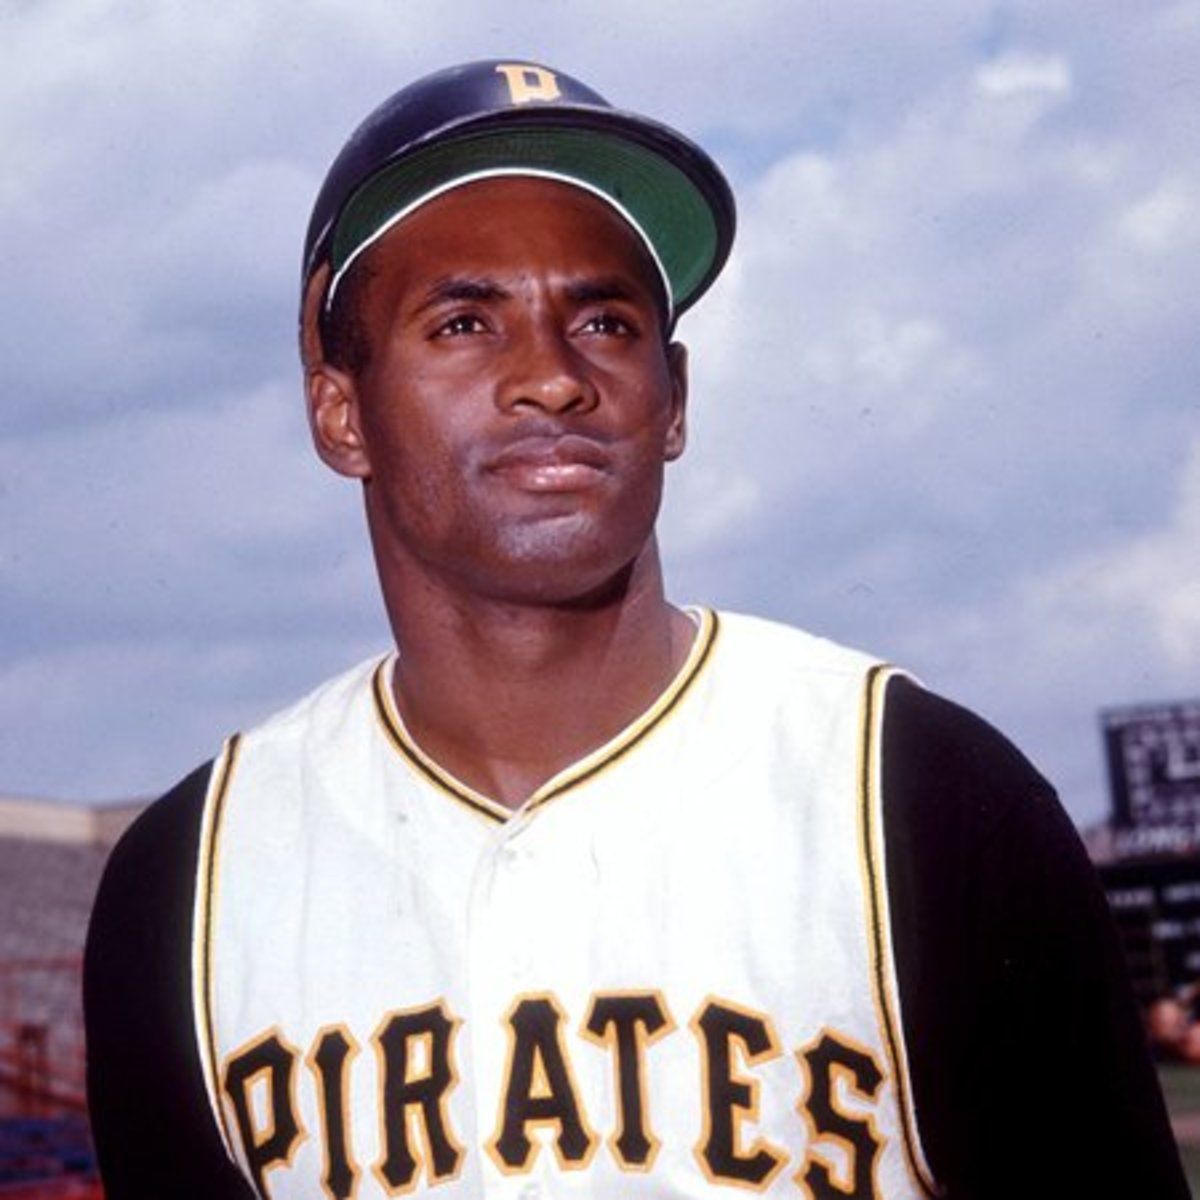 Roberto Clemente: Baseball Legend and Philanthropist